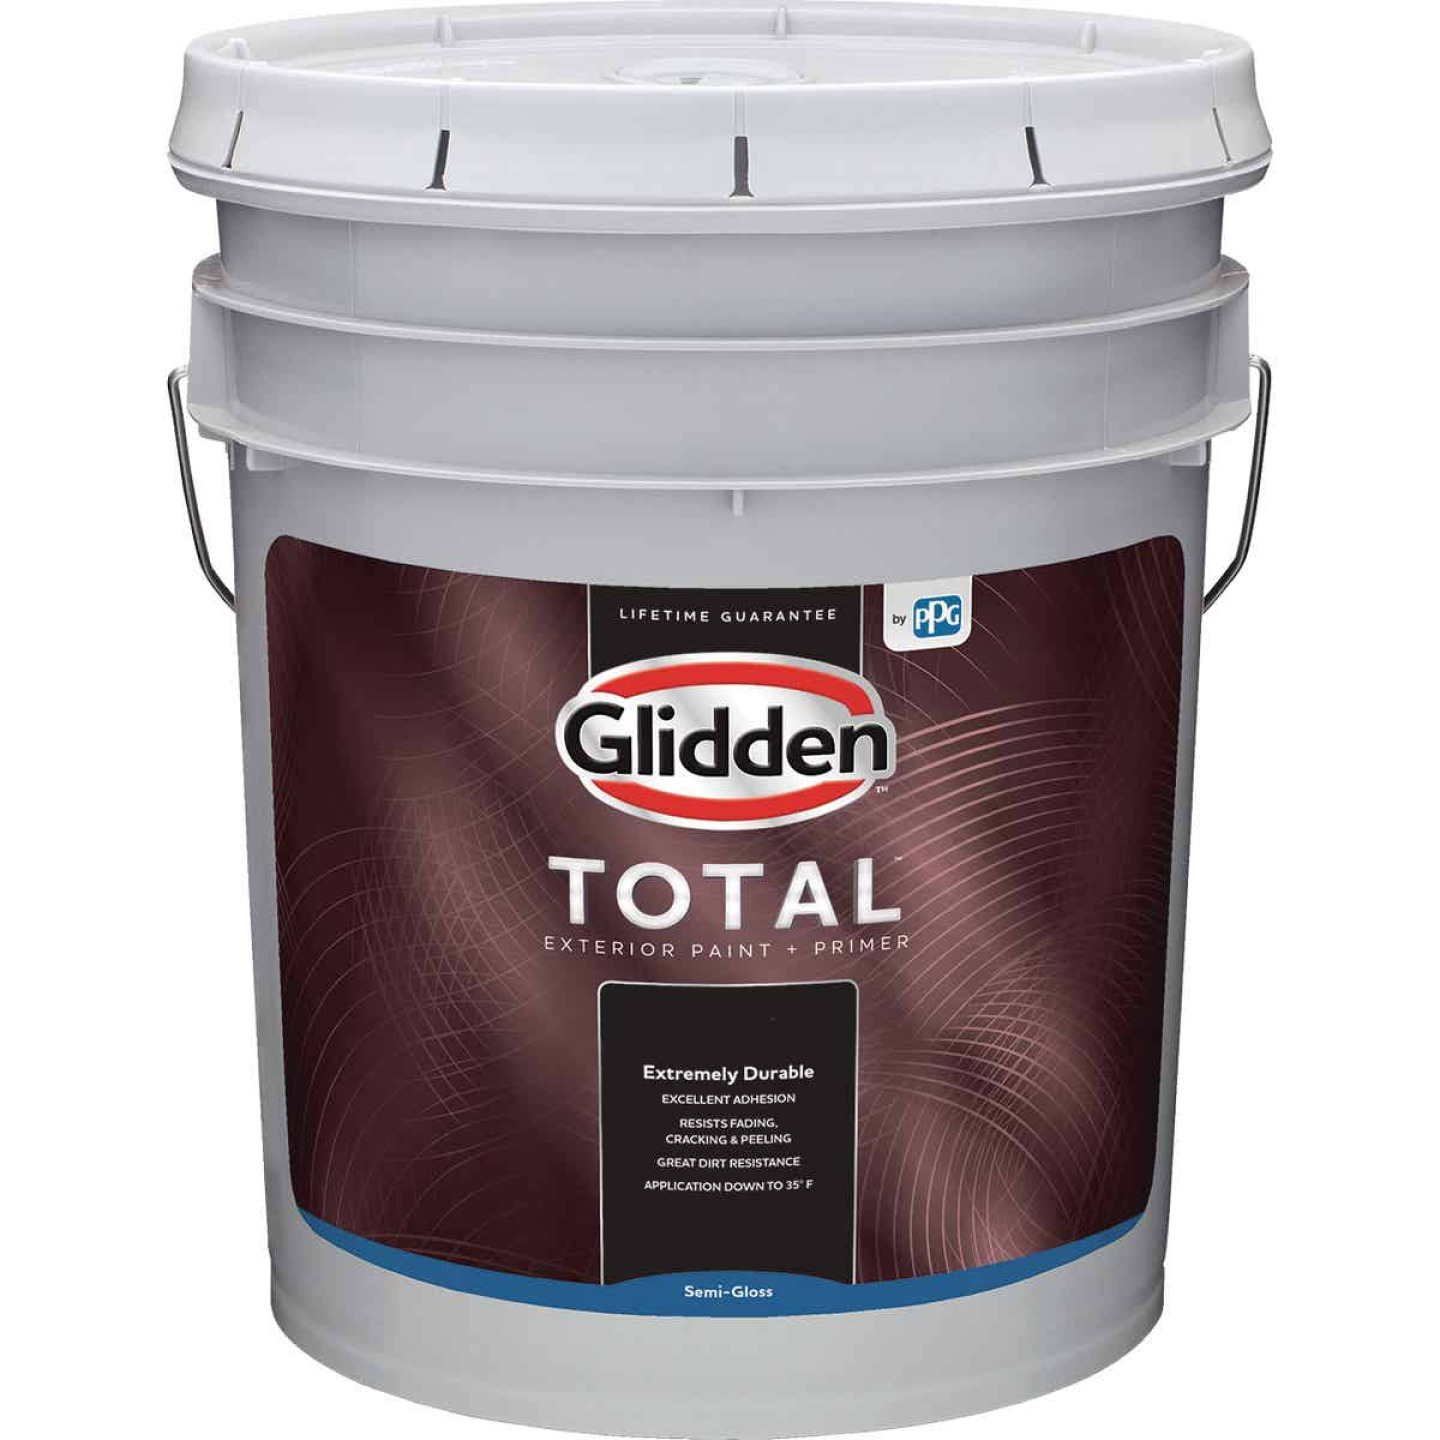 Glidden Total Exterior Paint + Primer Semi-Gloss Midtone Base 5 Gallon Image 1